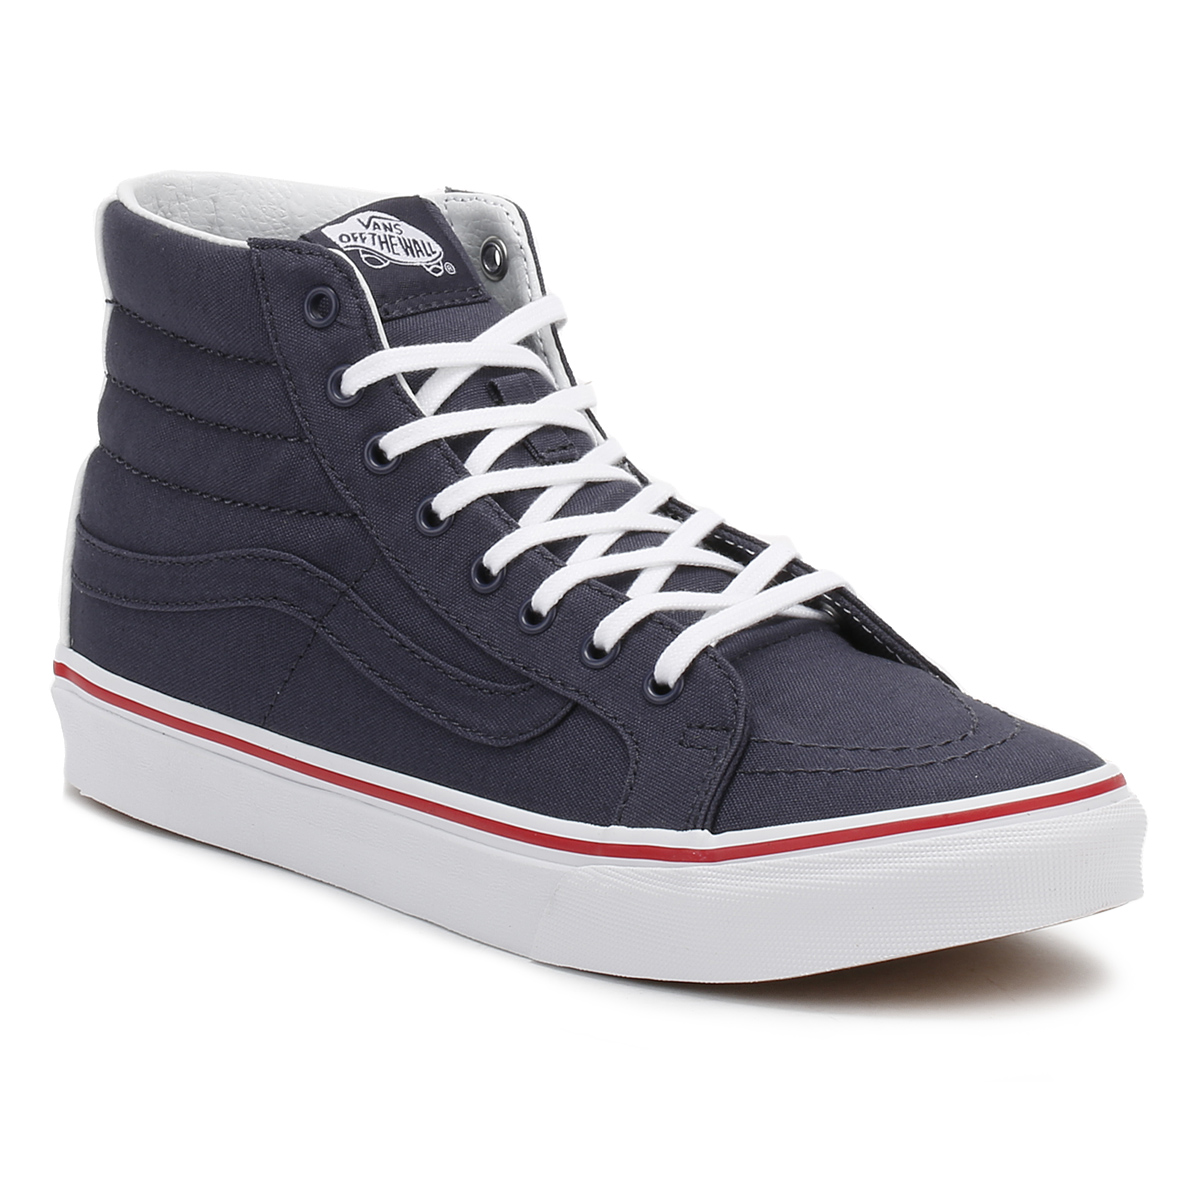 vans womens sk8 hi slim trainers lace up high top sneakers ladies casual shoes ebay. Black Bedroom Furniture Sets. Home Design Ideas